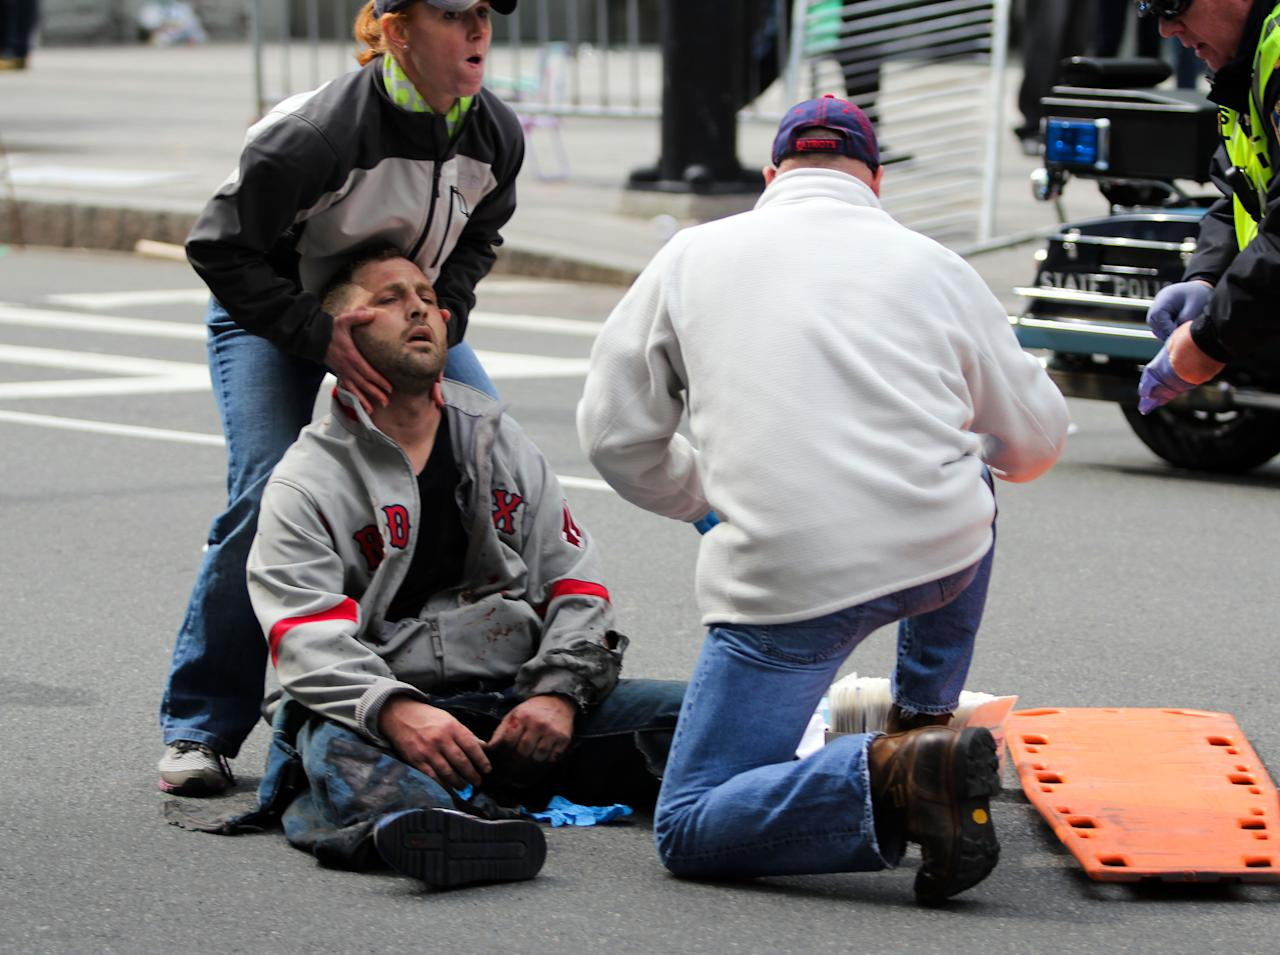 In this photo provided by The Daily Free Press and Kenshin Okubo, people assist an injured after an explosion at the 2013 Boston Marathon in Boston, Monday, April 15, 2013. Two explosions shattered the euphoria of the Boston Marathon finish line on Monday, sending authorities out on the course to carry off the injured while the stragglers were rerouted away from the smoking site of the blasts. (AP Photo/The Daily Free Press, Kenshin Okubo) MANDATORY CREDIT